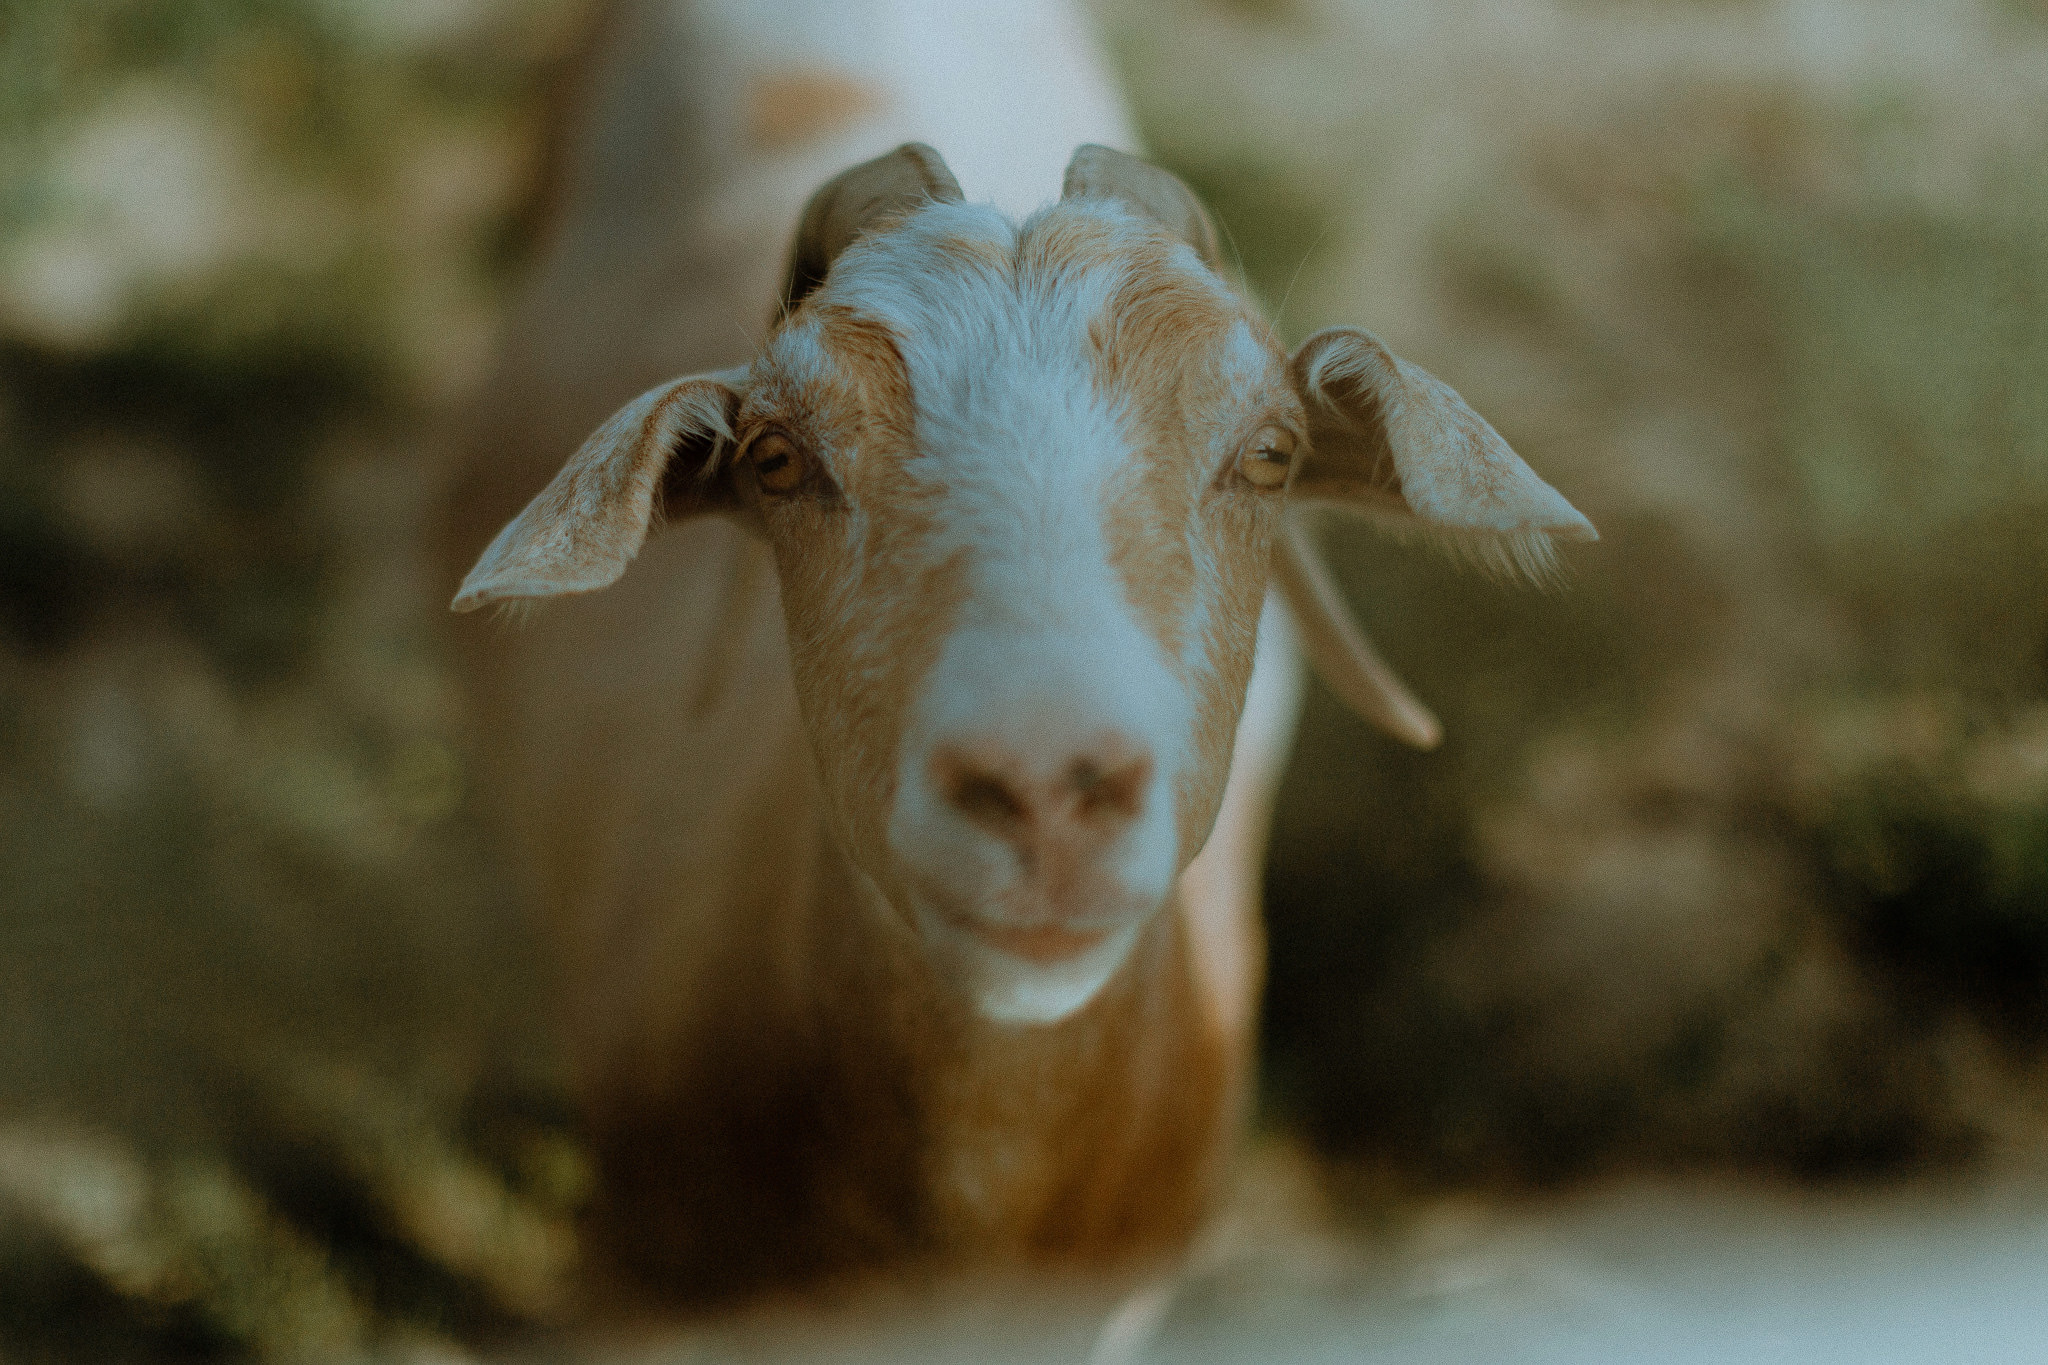 Goat at South Pond Farms Venue in Bethany Ontario